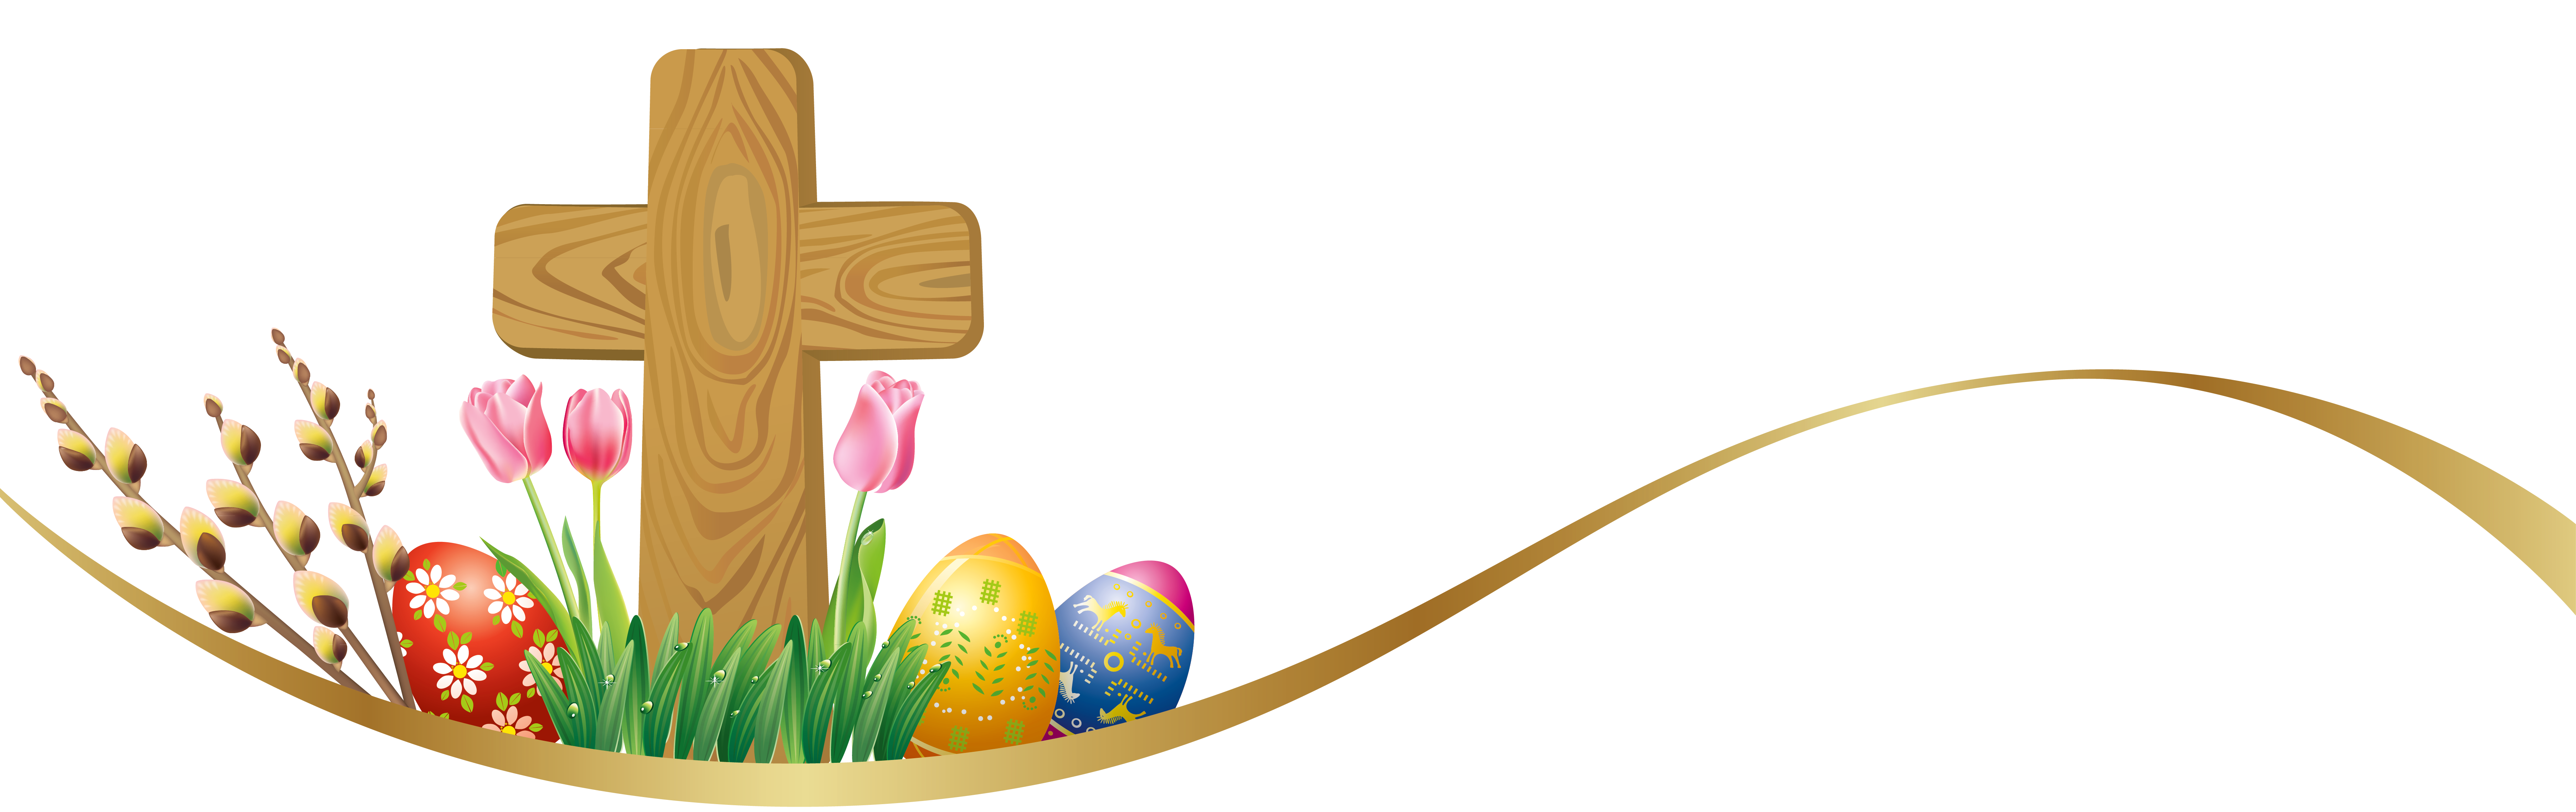 Cross clipart free download clipart Easter egg Cross Clip art - Easter Deco with Eggs and Cross PNG ... clipart